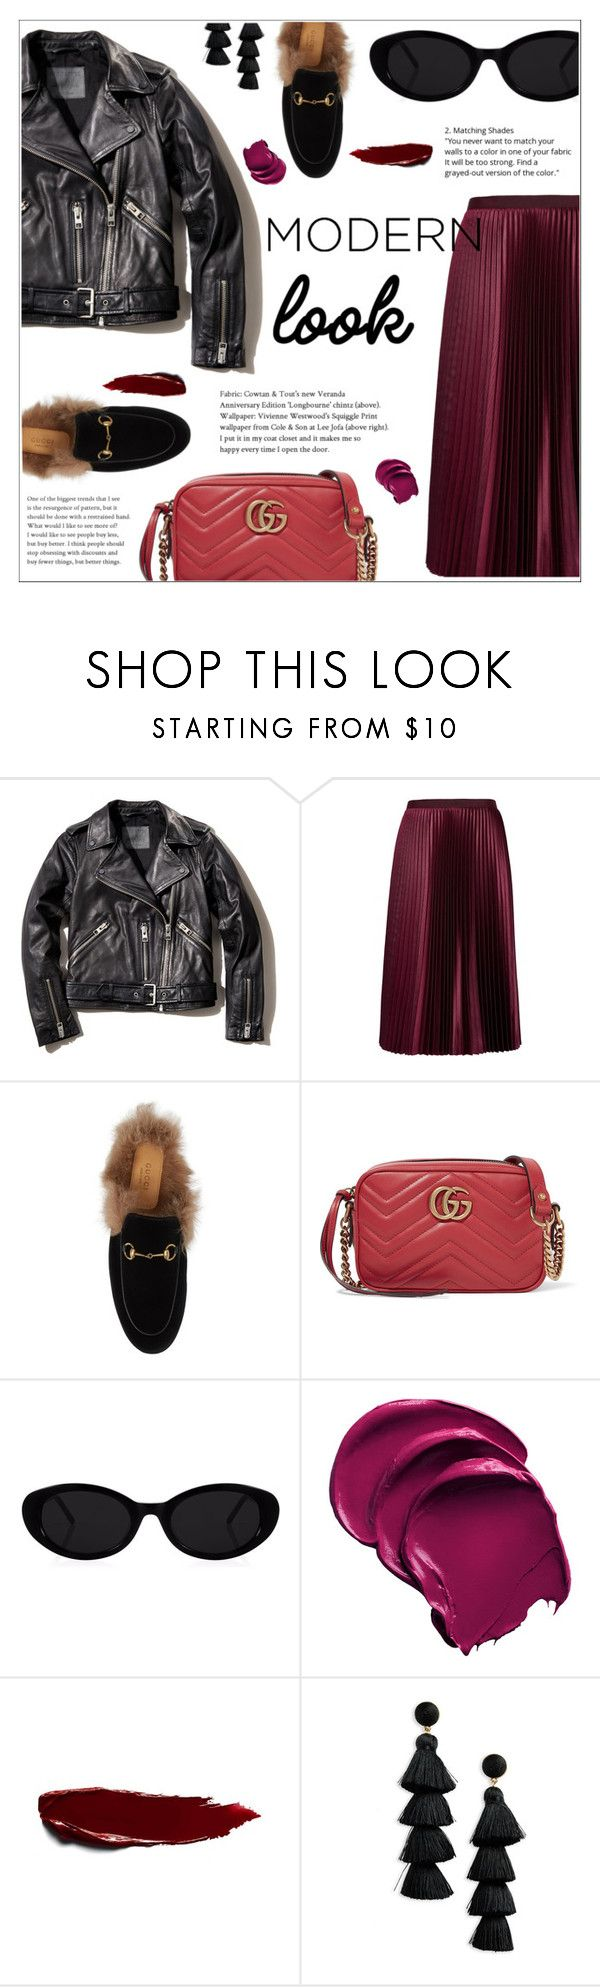 """""""MODERN STYLE"""" by ifip ❤ liked on Polyvore featuring AllSaints, Ted Baker, Gucci, BaubleBar and modern"""